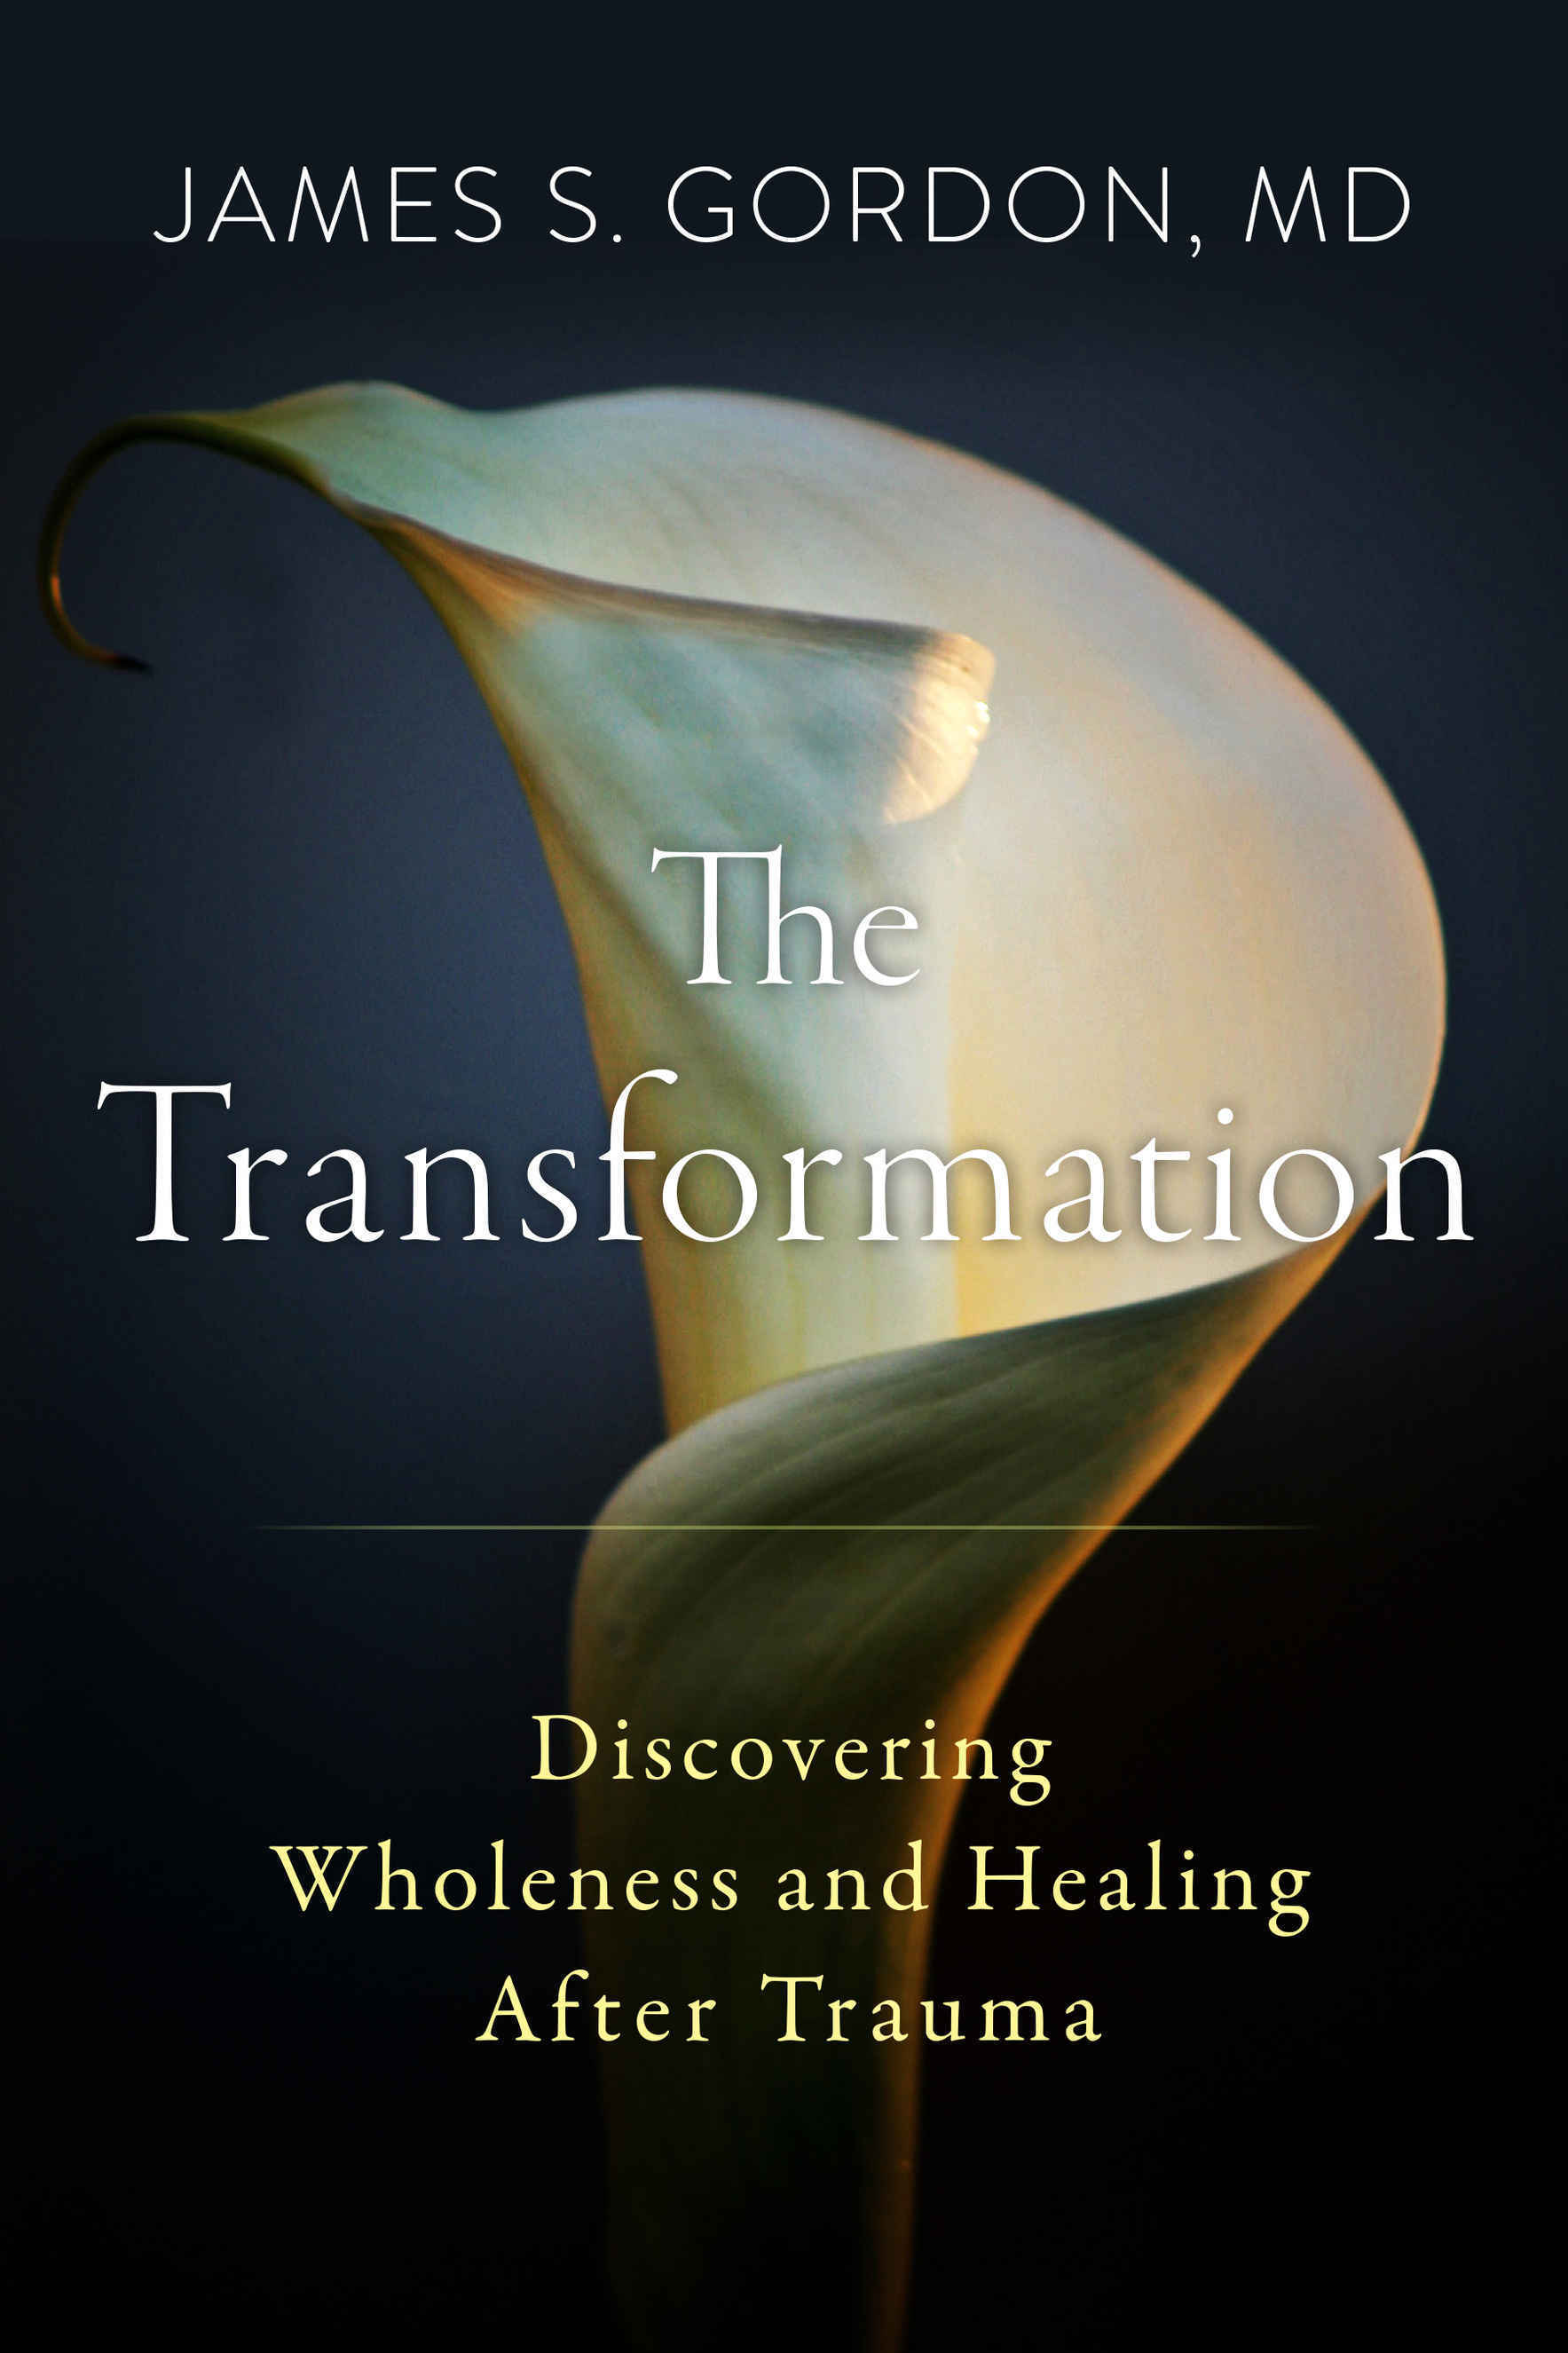 Book Spotlight: The Transformation with author James Gordon, M.D. image